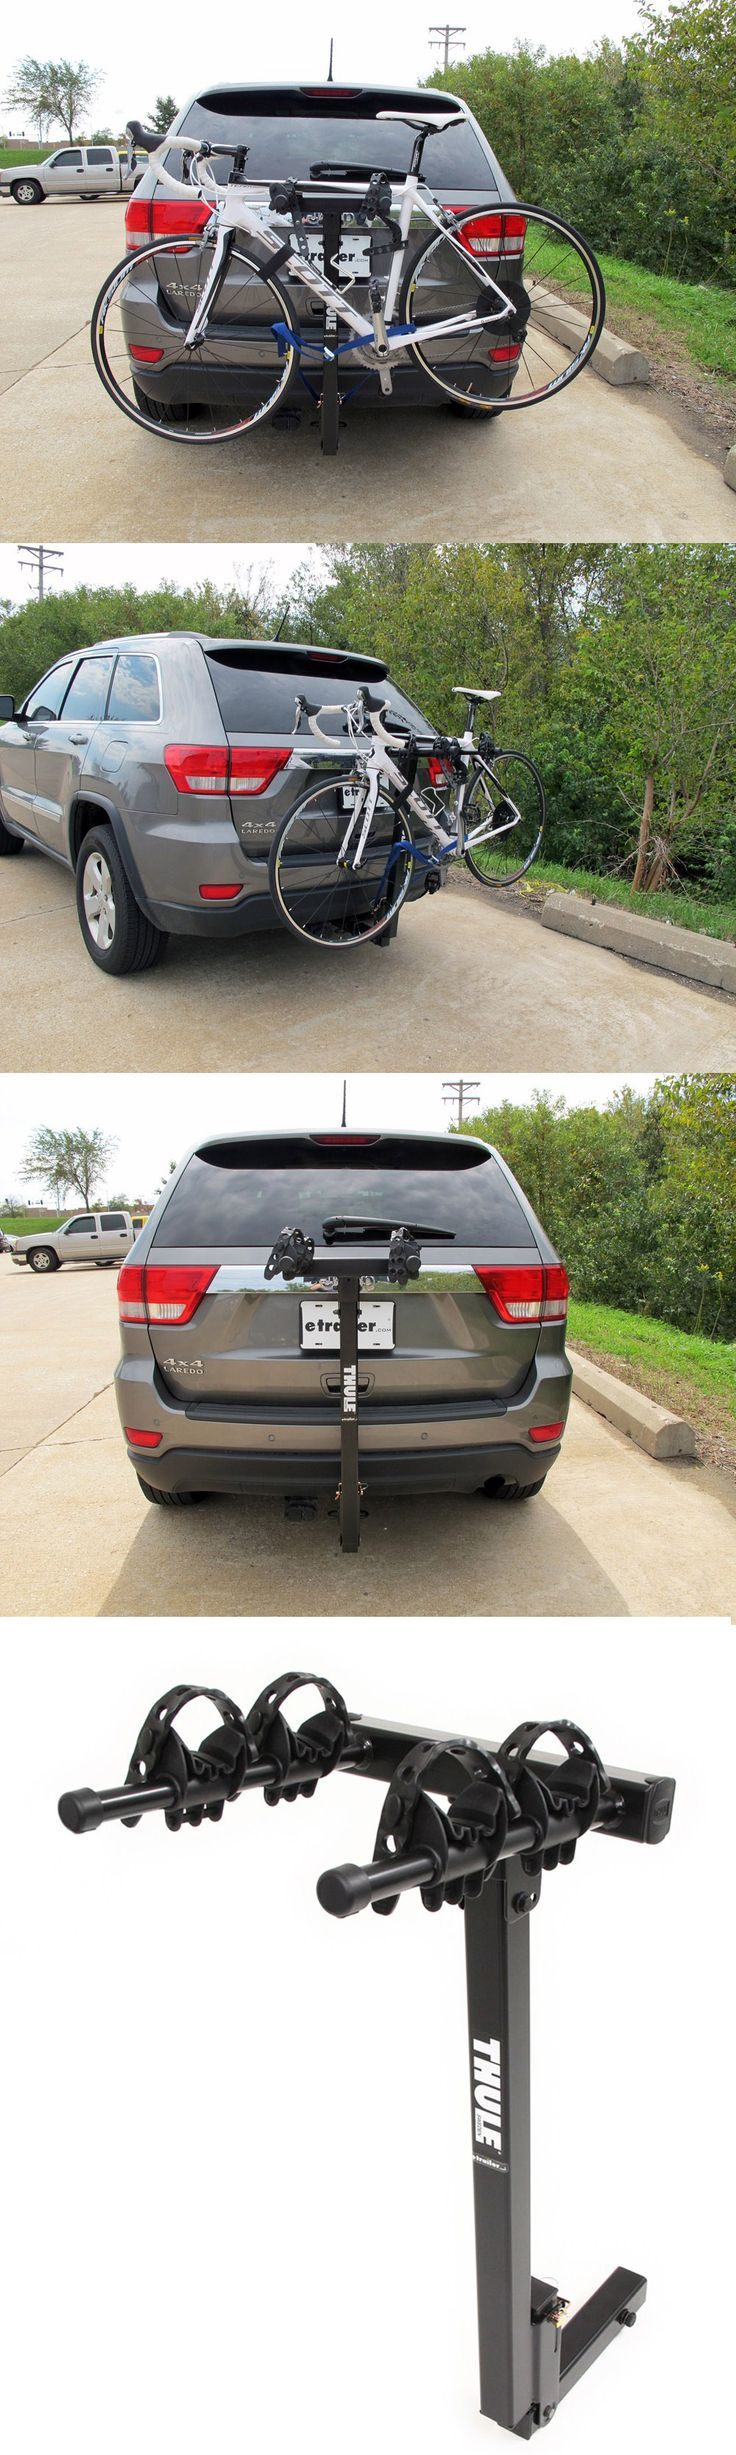 Dual arm, hitch-mounted bike rack efficiently transports bikes to and form the biking site. Compatible with the Jeep Cherokee - is able to tilt back and forth for easy access to rear cargo area.